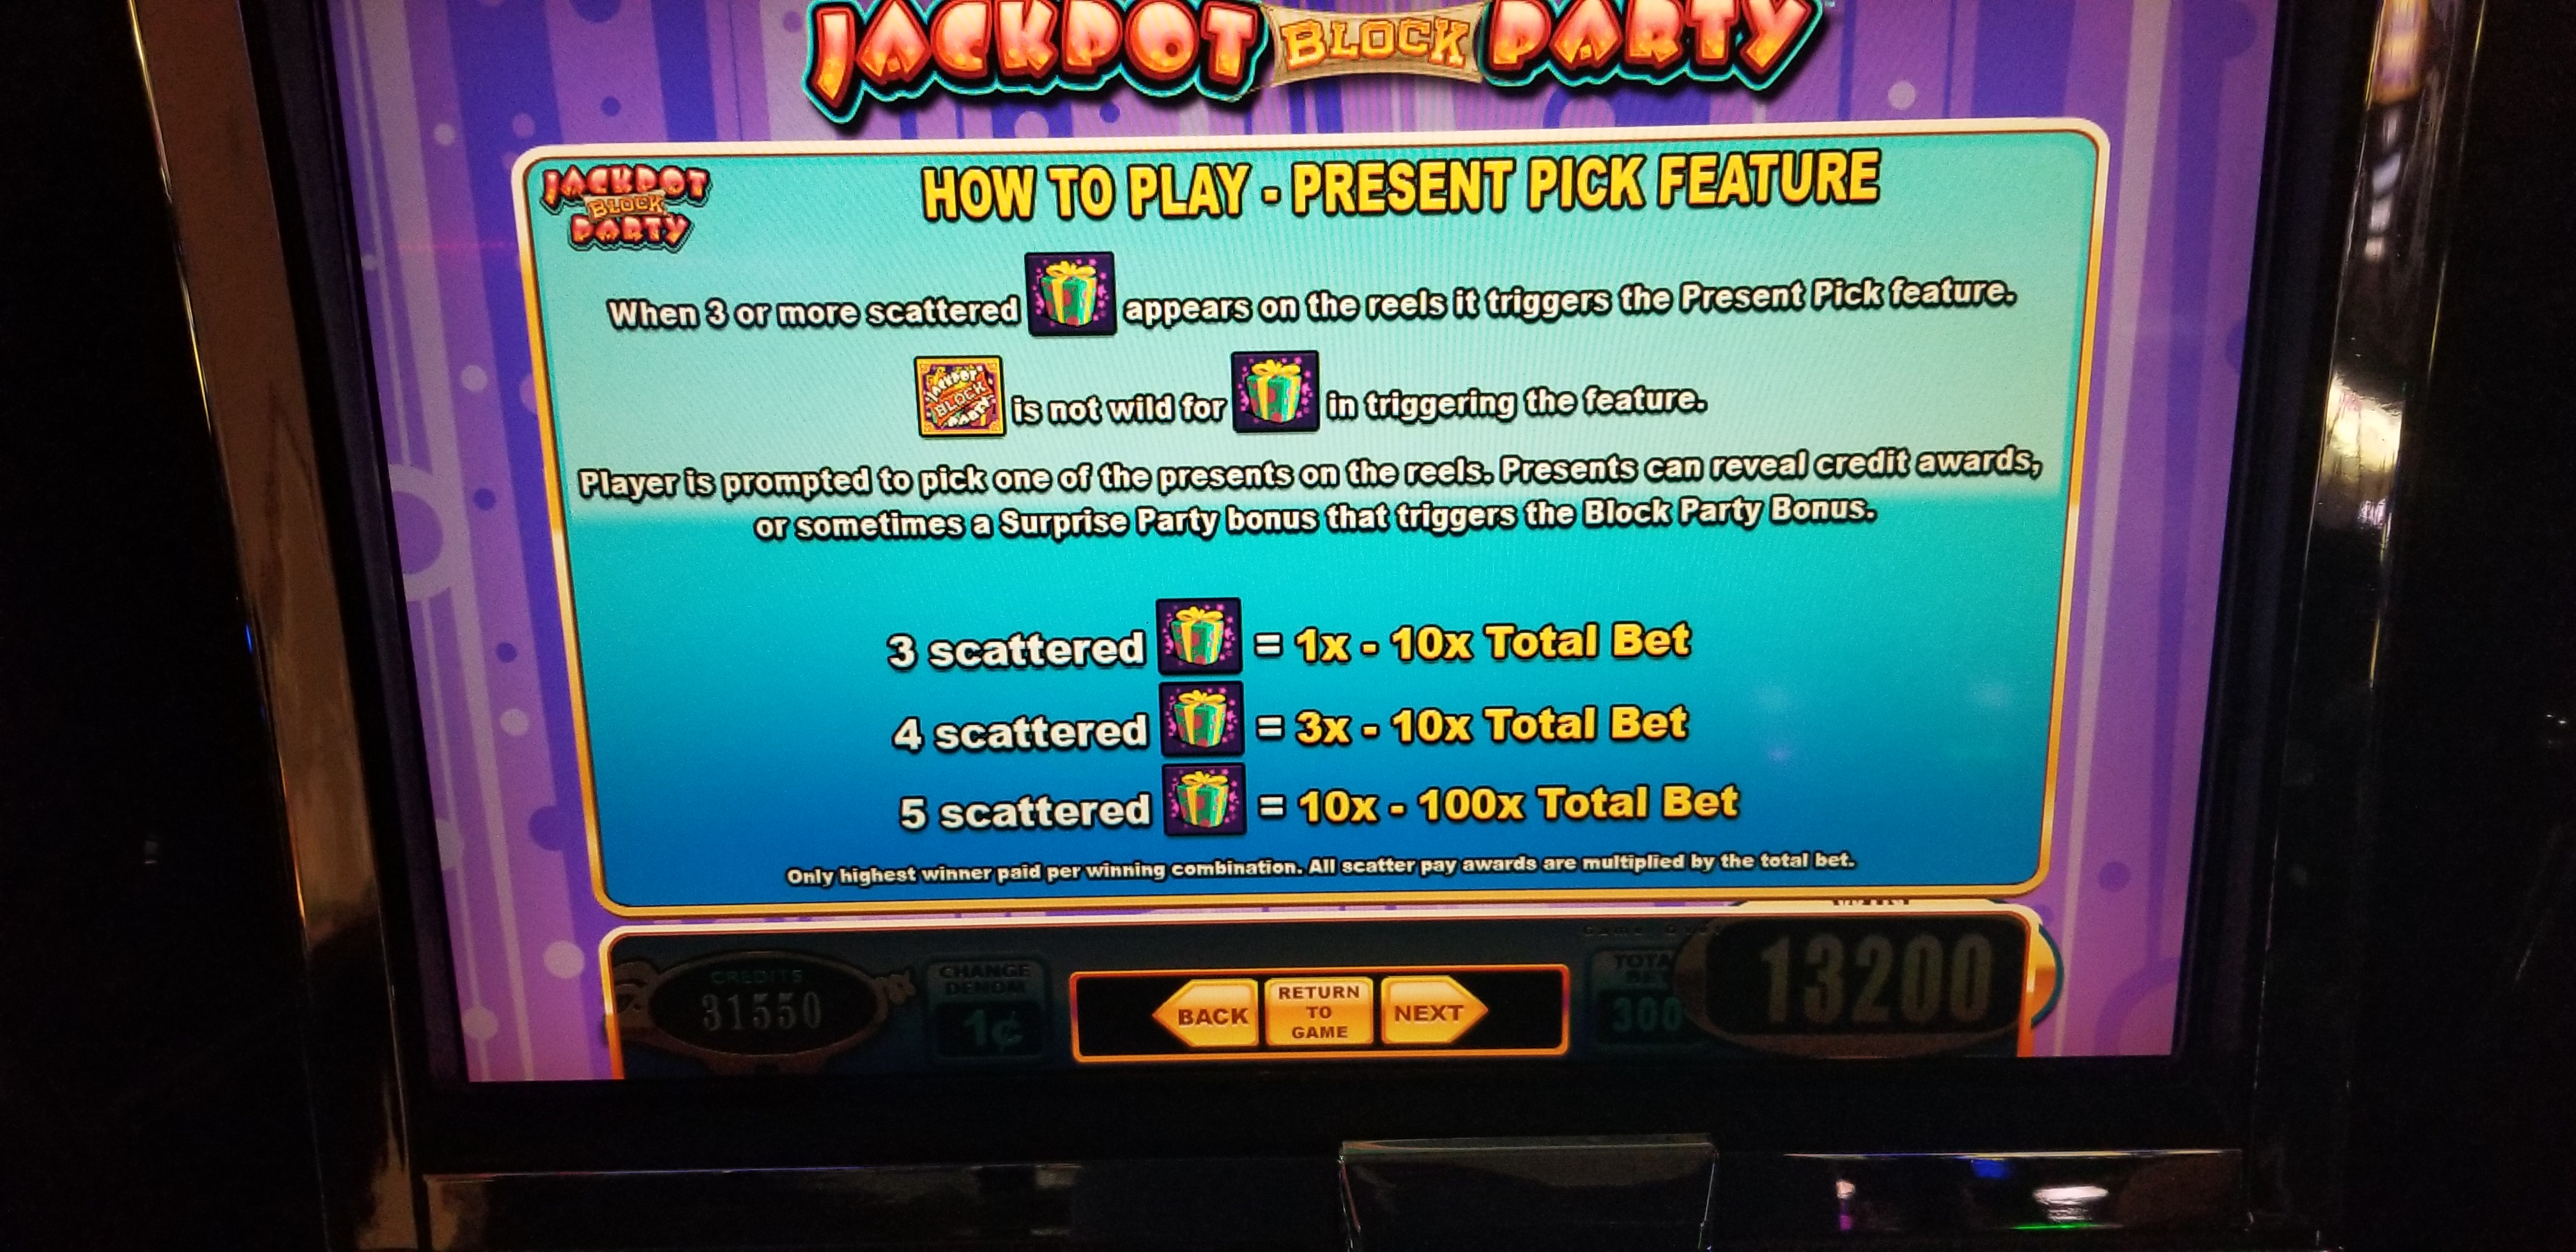 Wms Blue Bird 2 Jackpot Block Party Video Bonus Slot